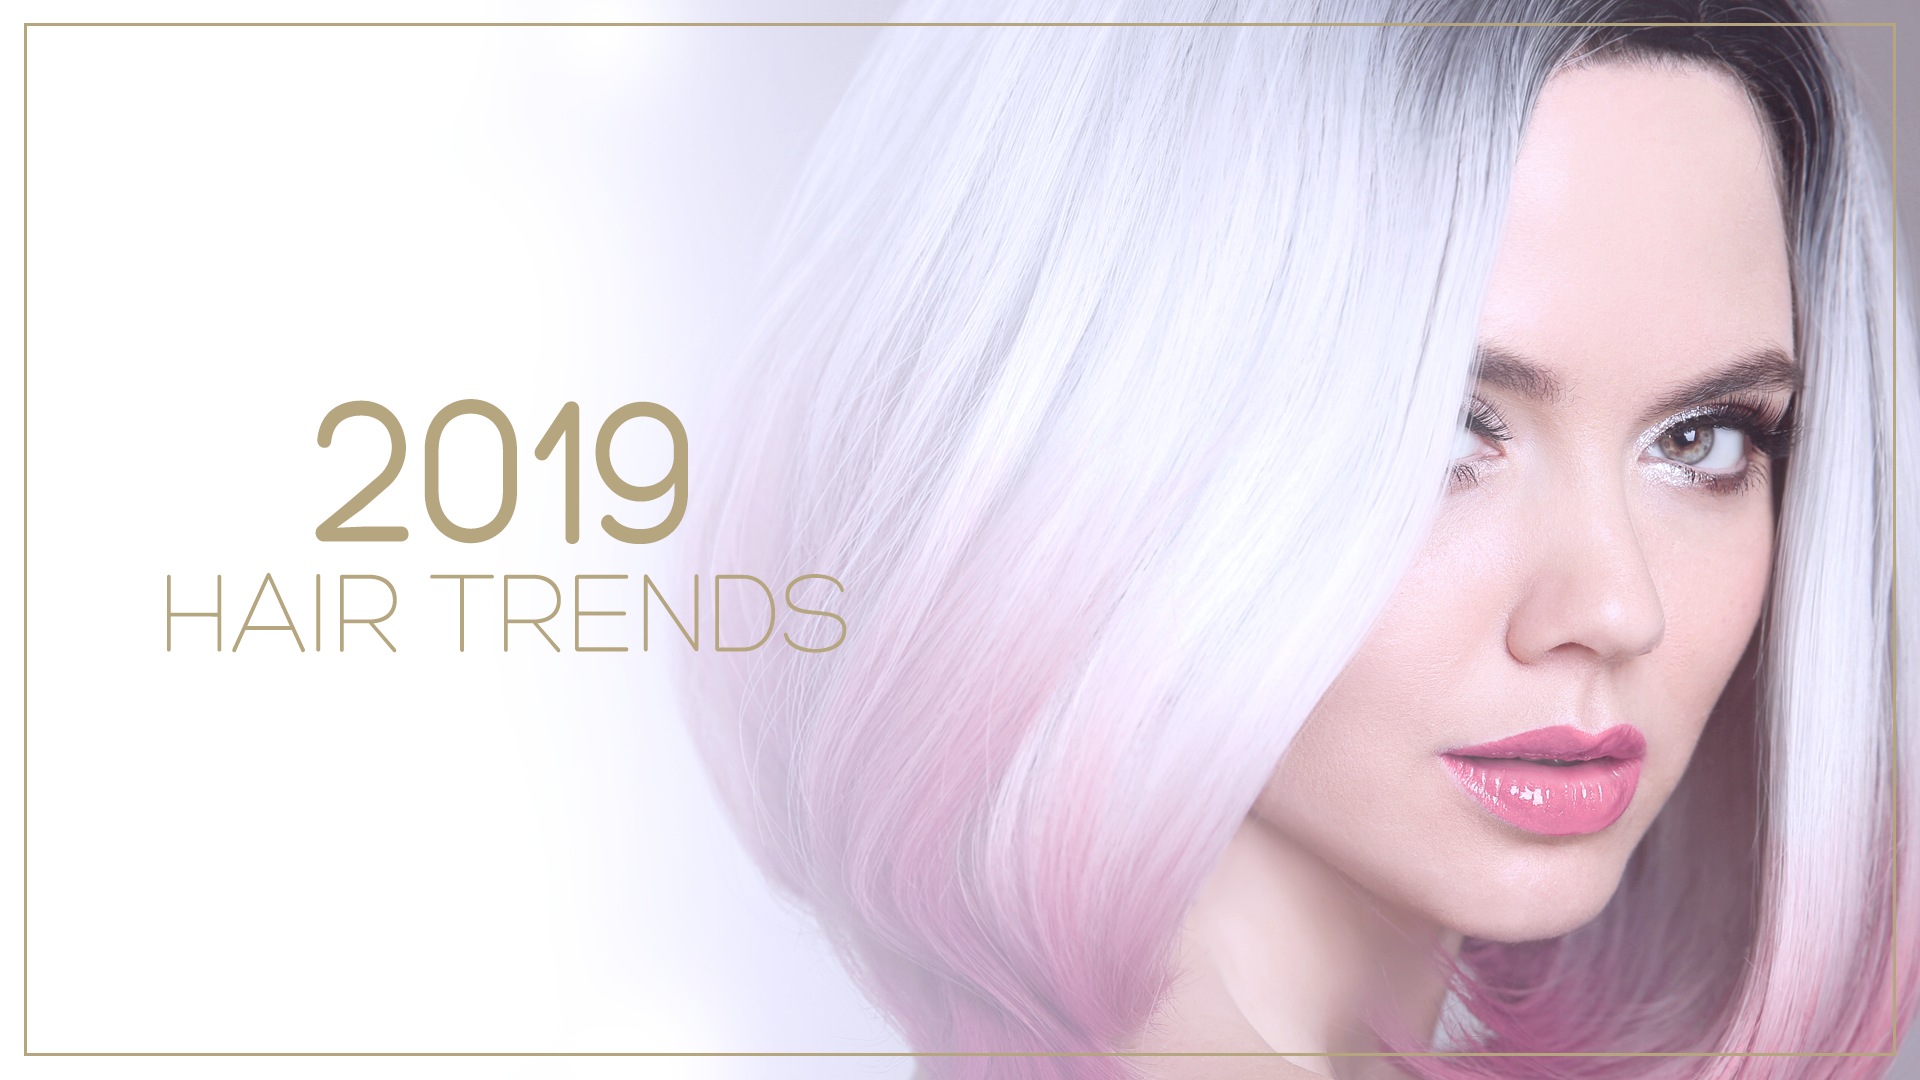 The most popular 2019 hair trends to expect next year!